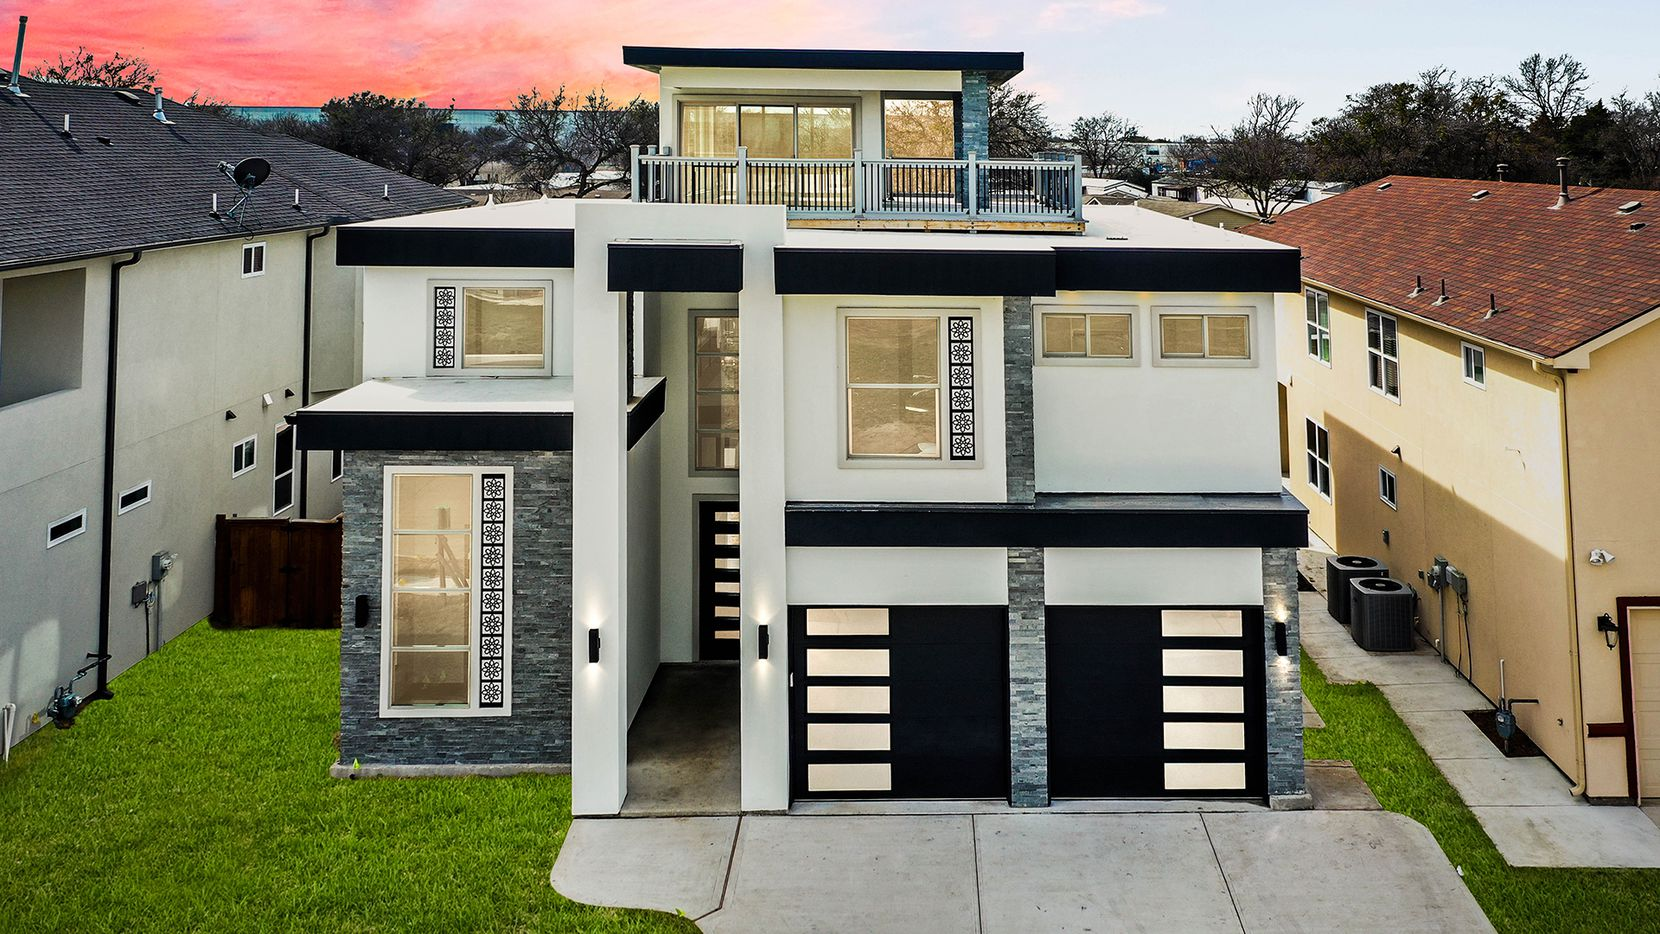 Farah Studios, the architectural design firm, worked closely with Building Element LLC to create this fully custom home.